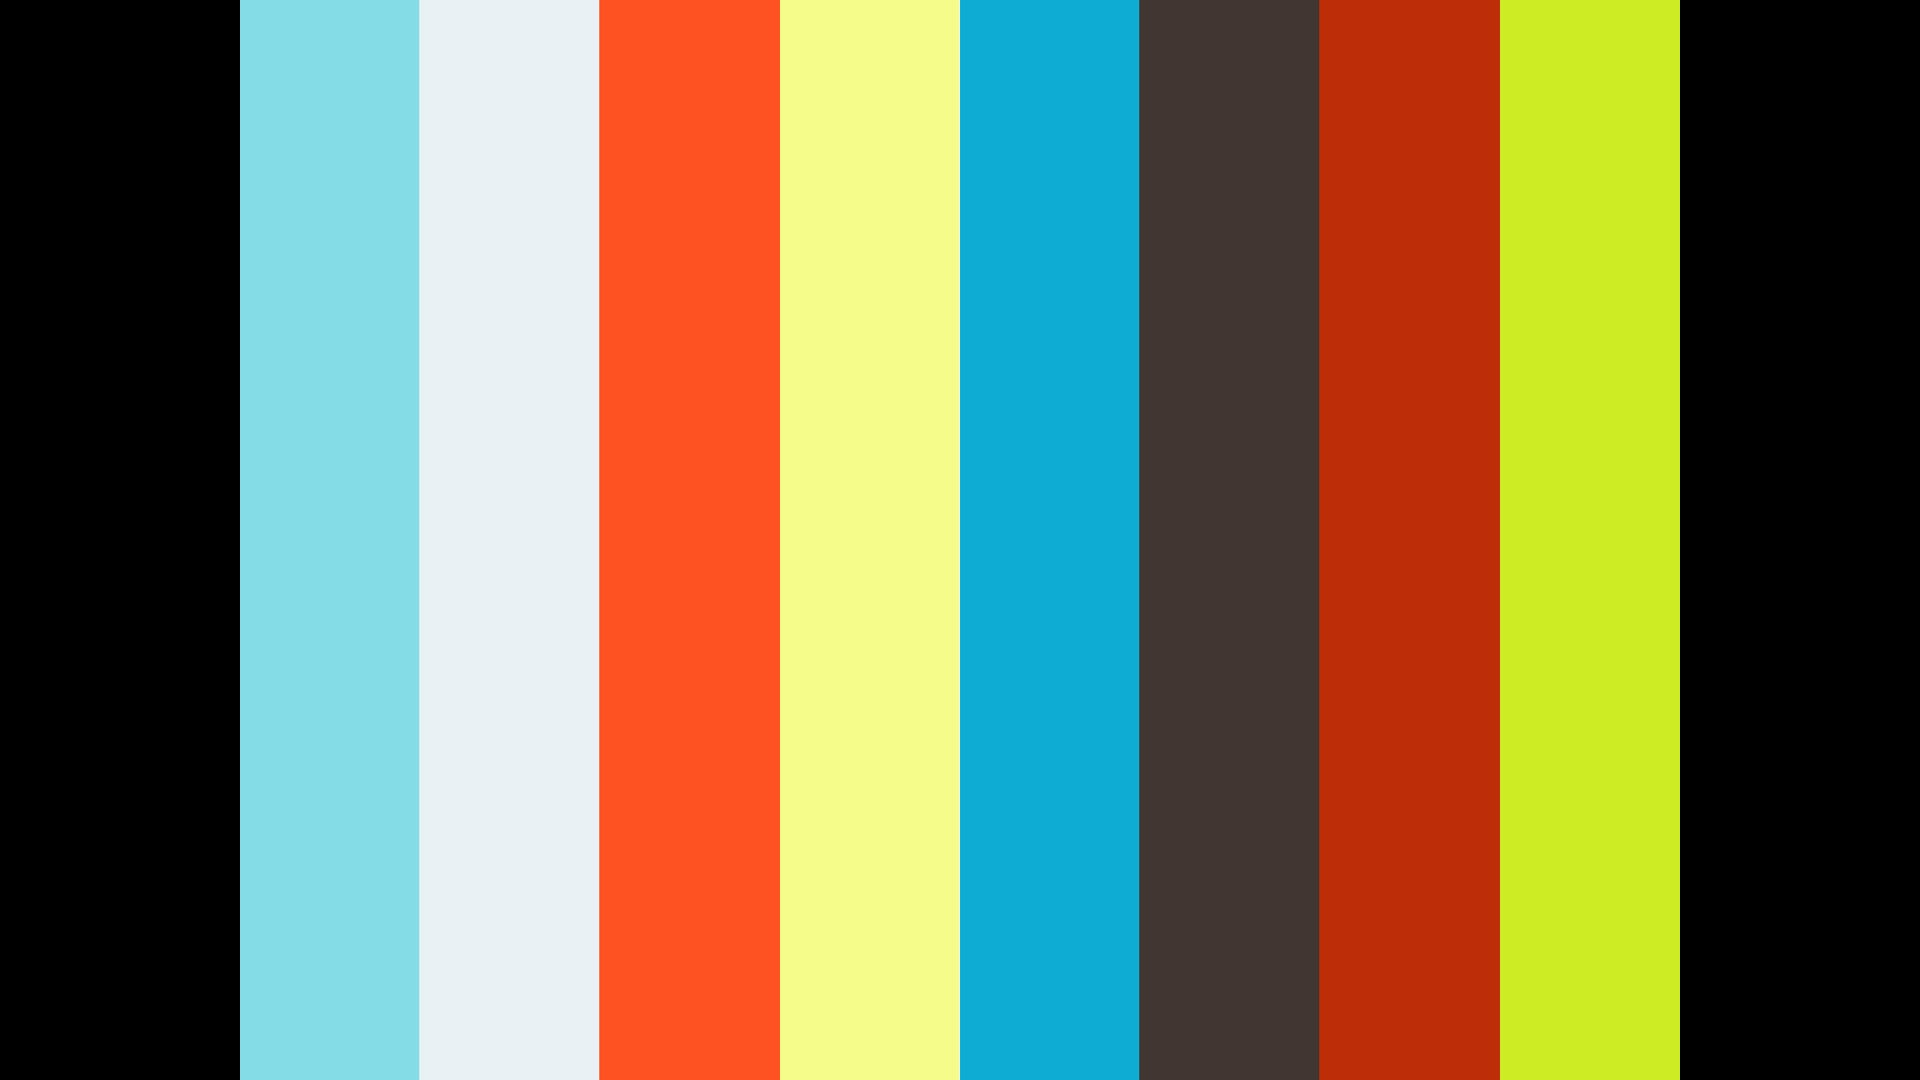 Ode to Number 14: Johan Cruijff by Niels Hoebers